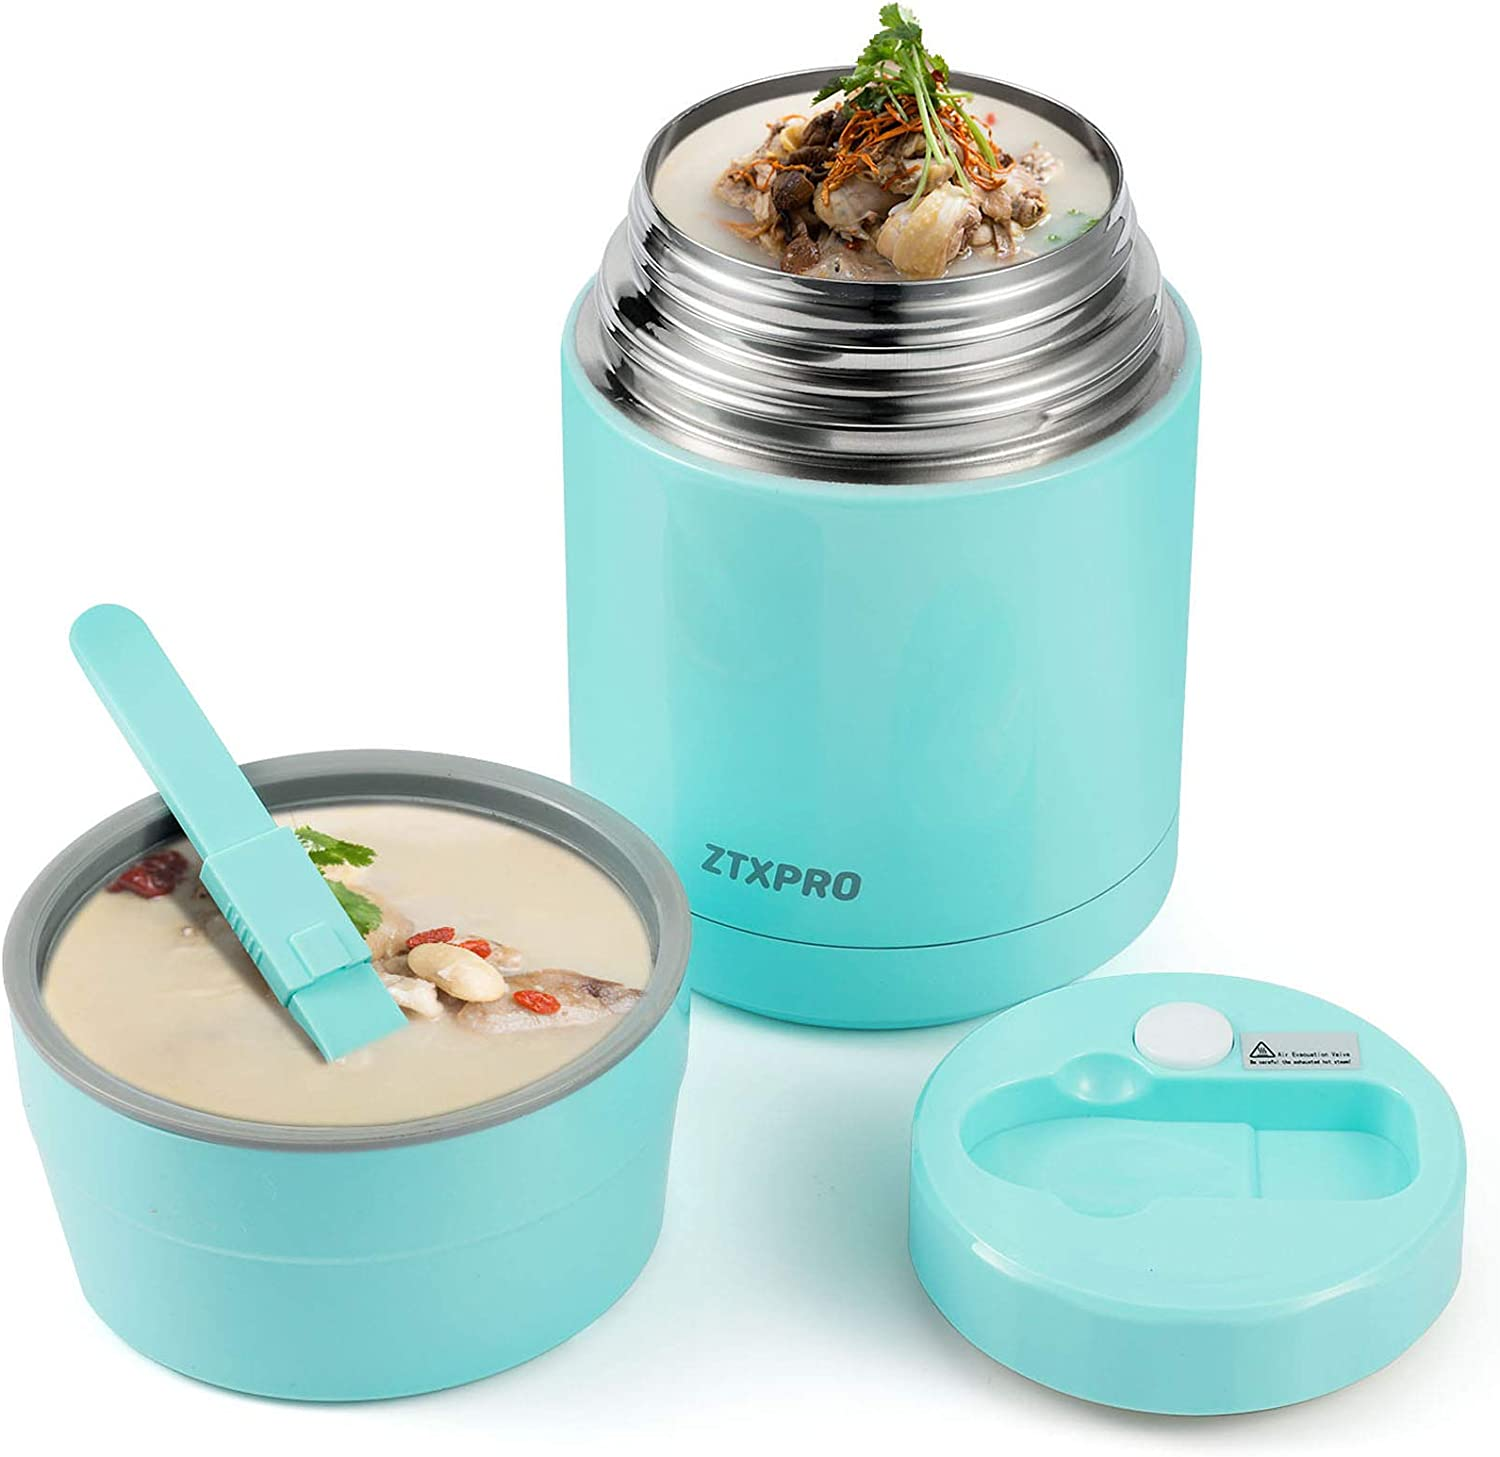 Insulated Lunch Container Thermos Food Jar for Hot Food Wide Mouth 27 oz with Folding Spoon & Handle Food Storage Container ZTXPRO Leak Proof Design for Adult School Picnic Office Outdoors -Cyan Blue